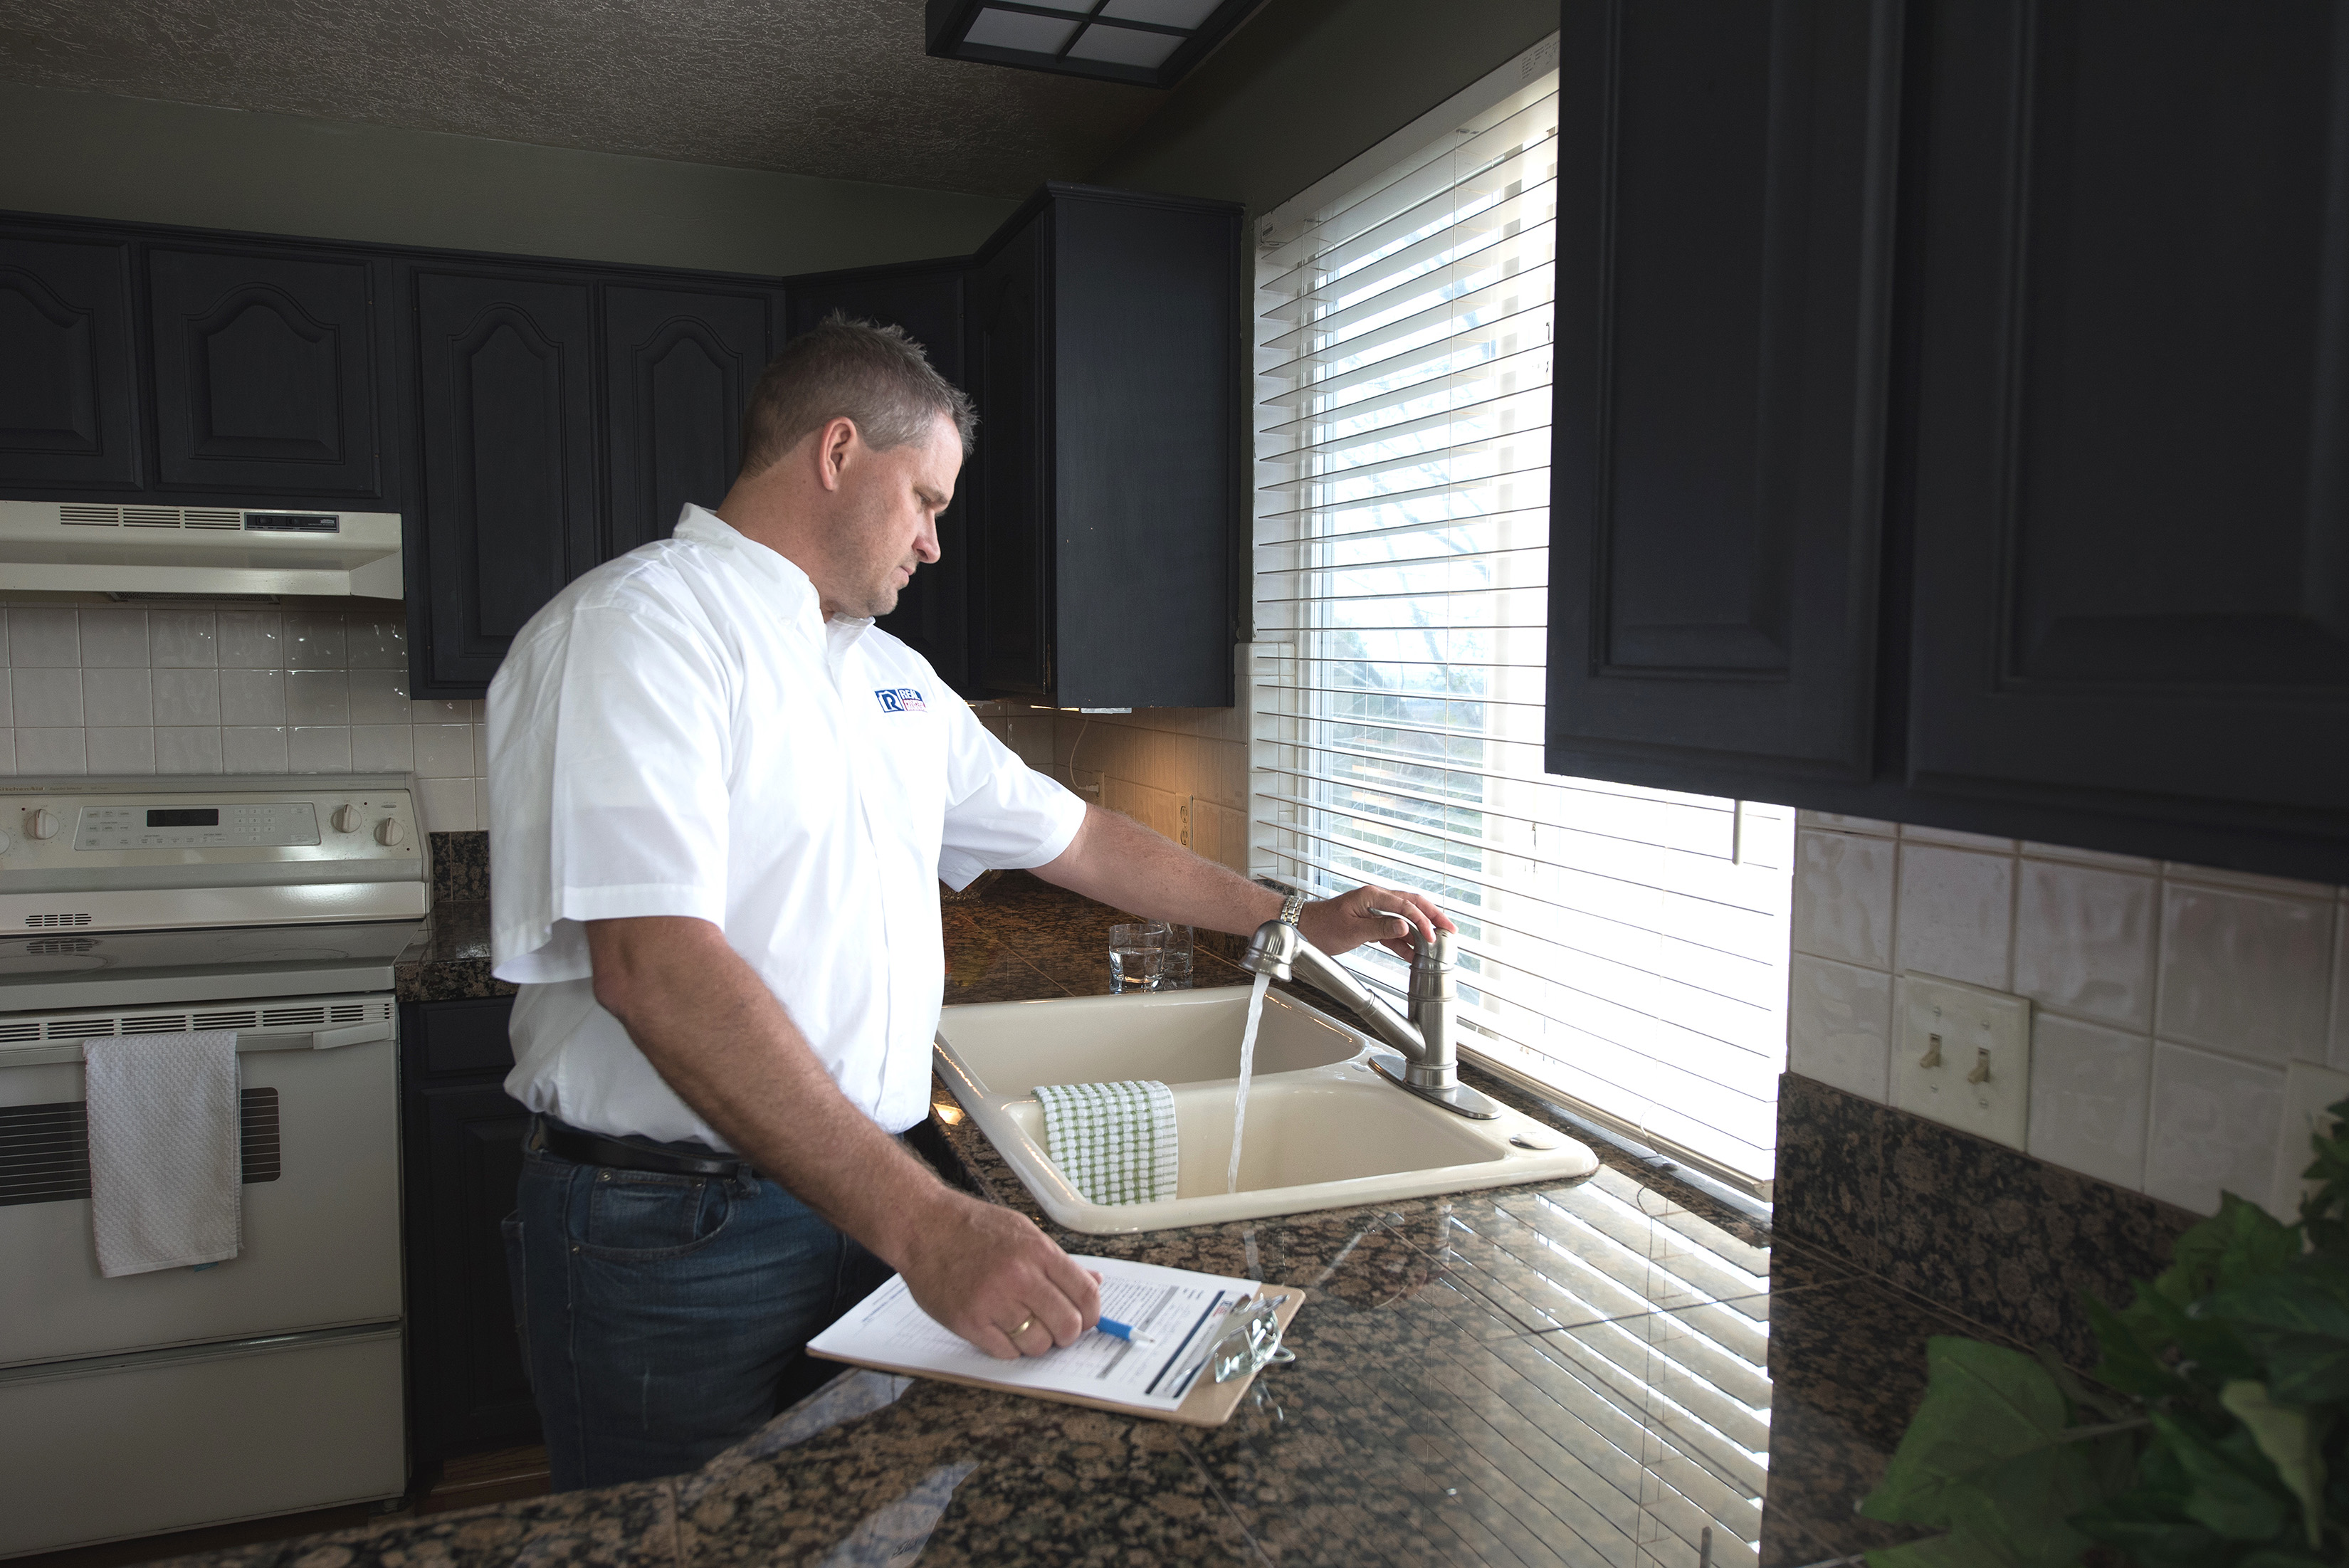 Real Property Management Fairmate staff inspecting the sink